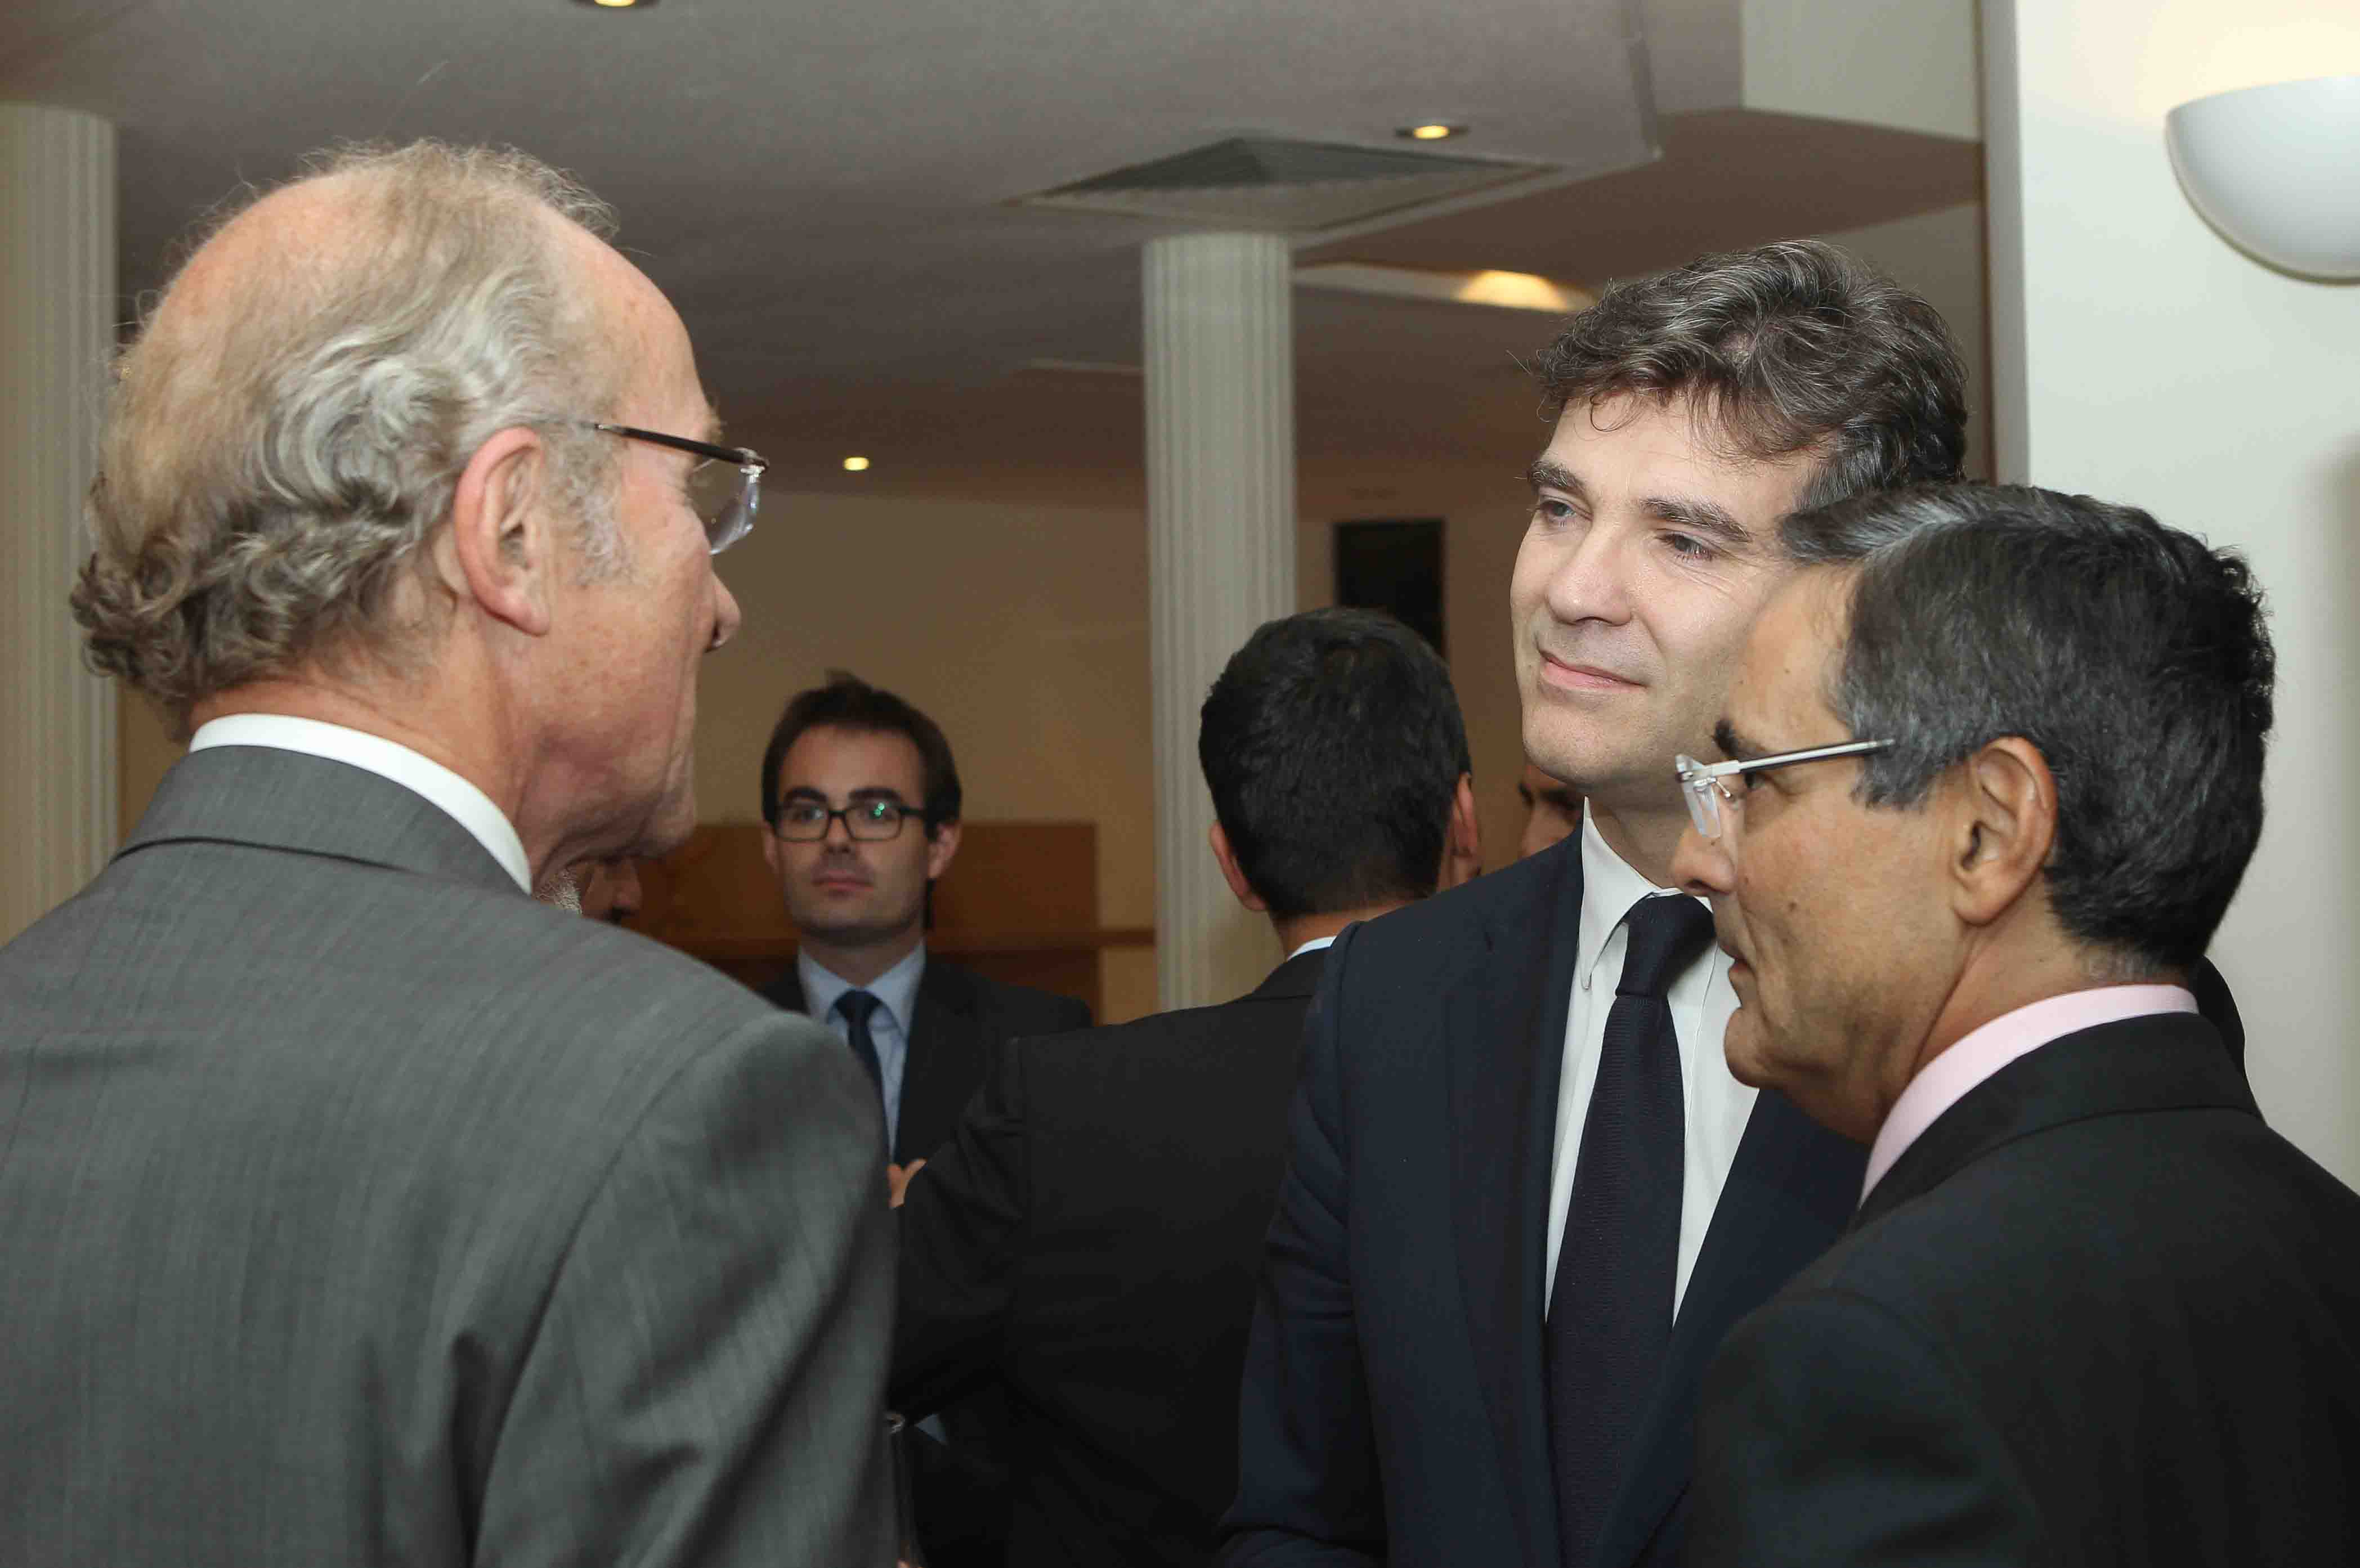 Minister MONTEBOURG exchange with ECC Dubaï's partner